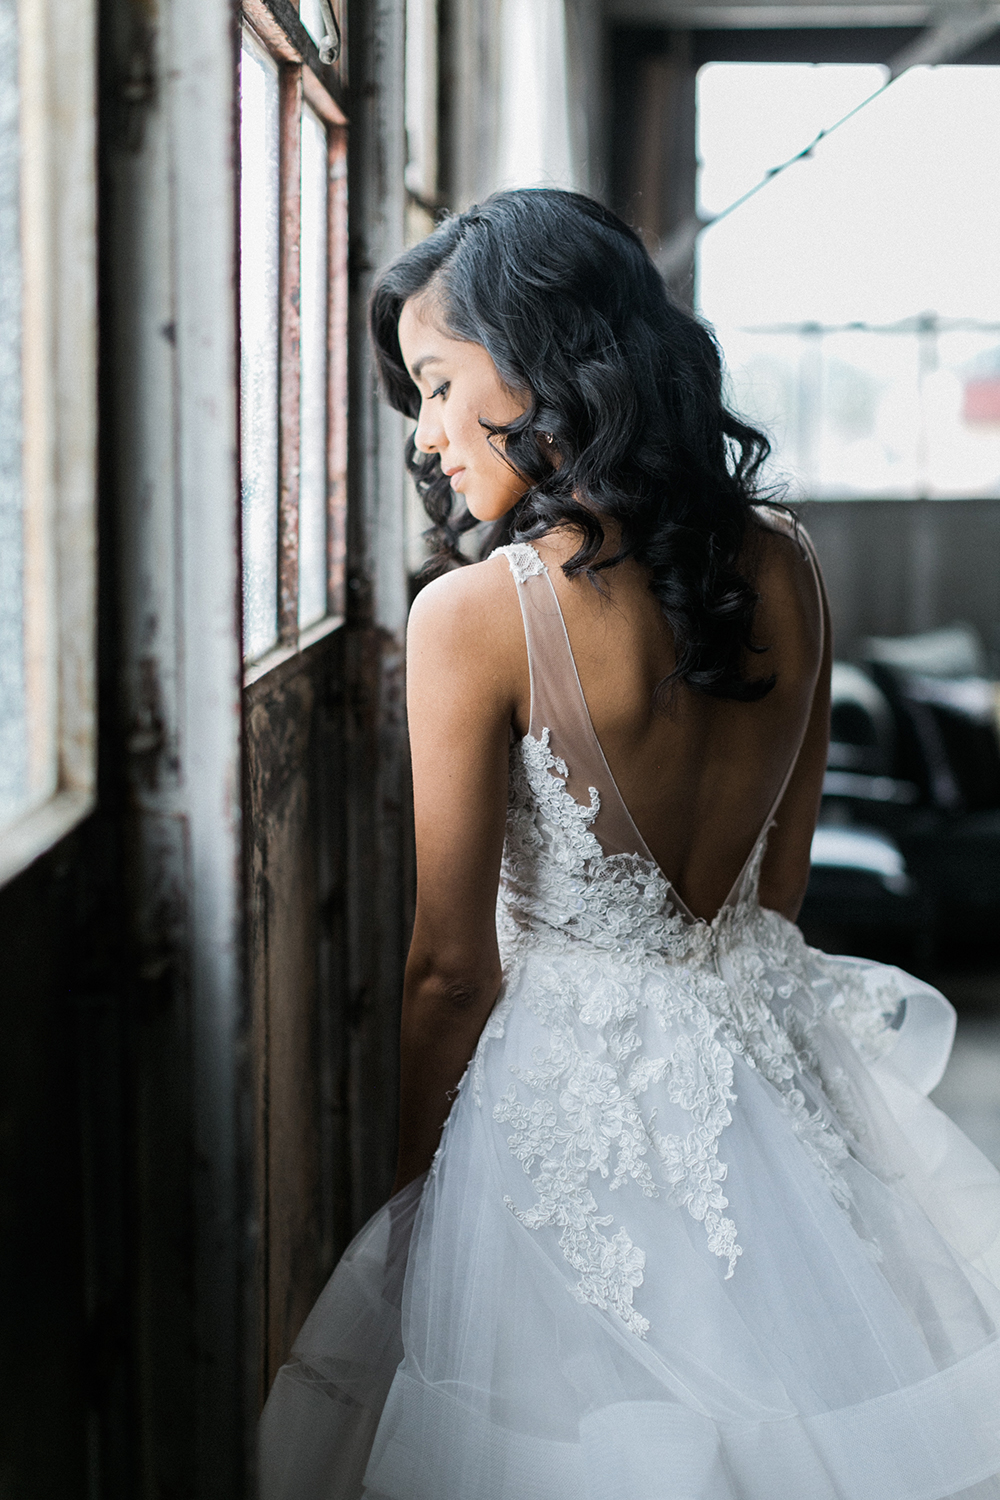 Industrial Glam Wedding Inspiration - photo by Alexis June Weddings http://ruffledblog.com/industrial-glam-wedding-inspiration